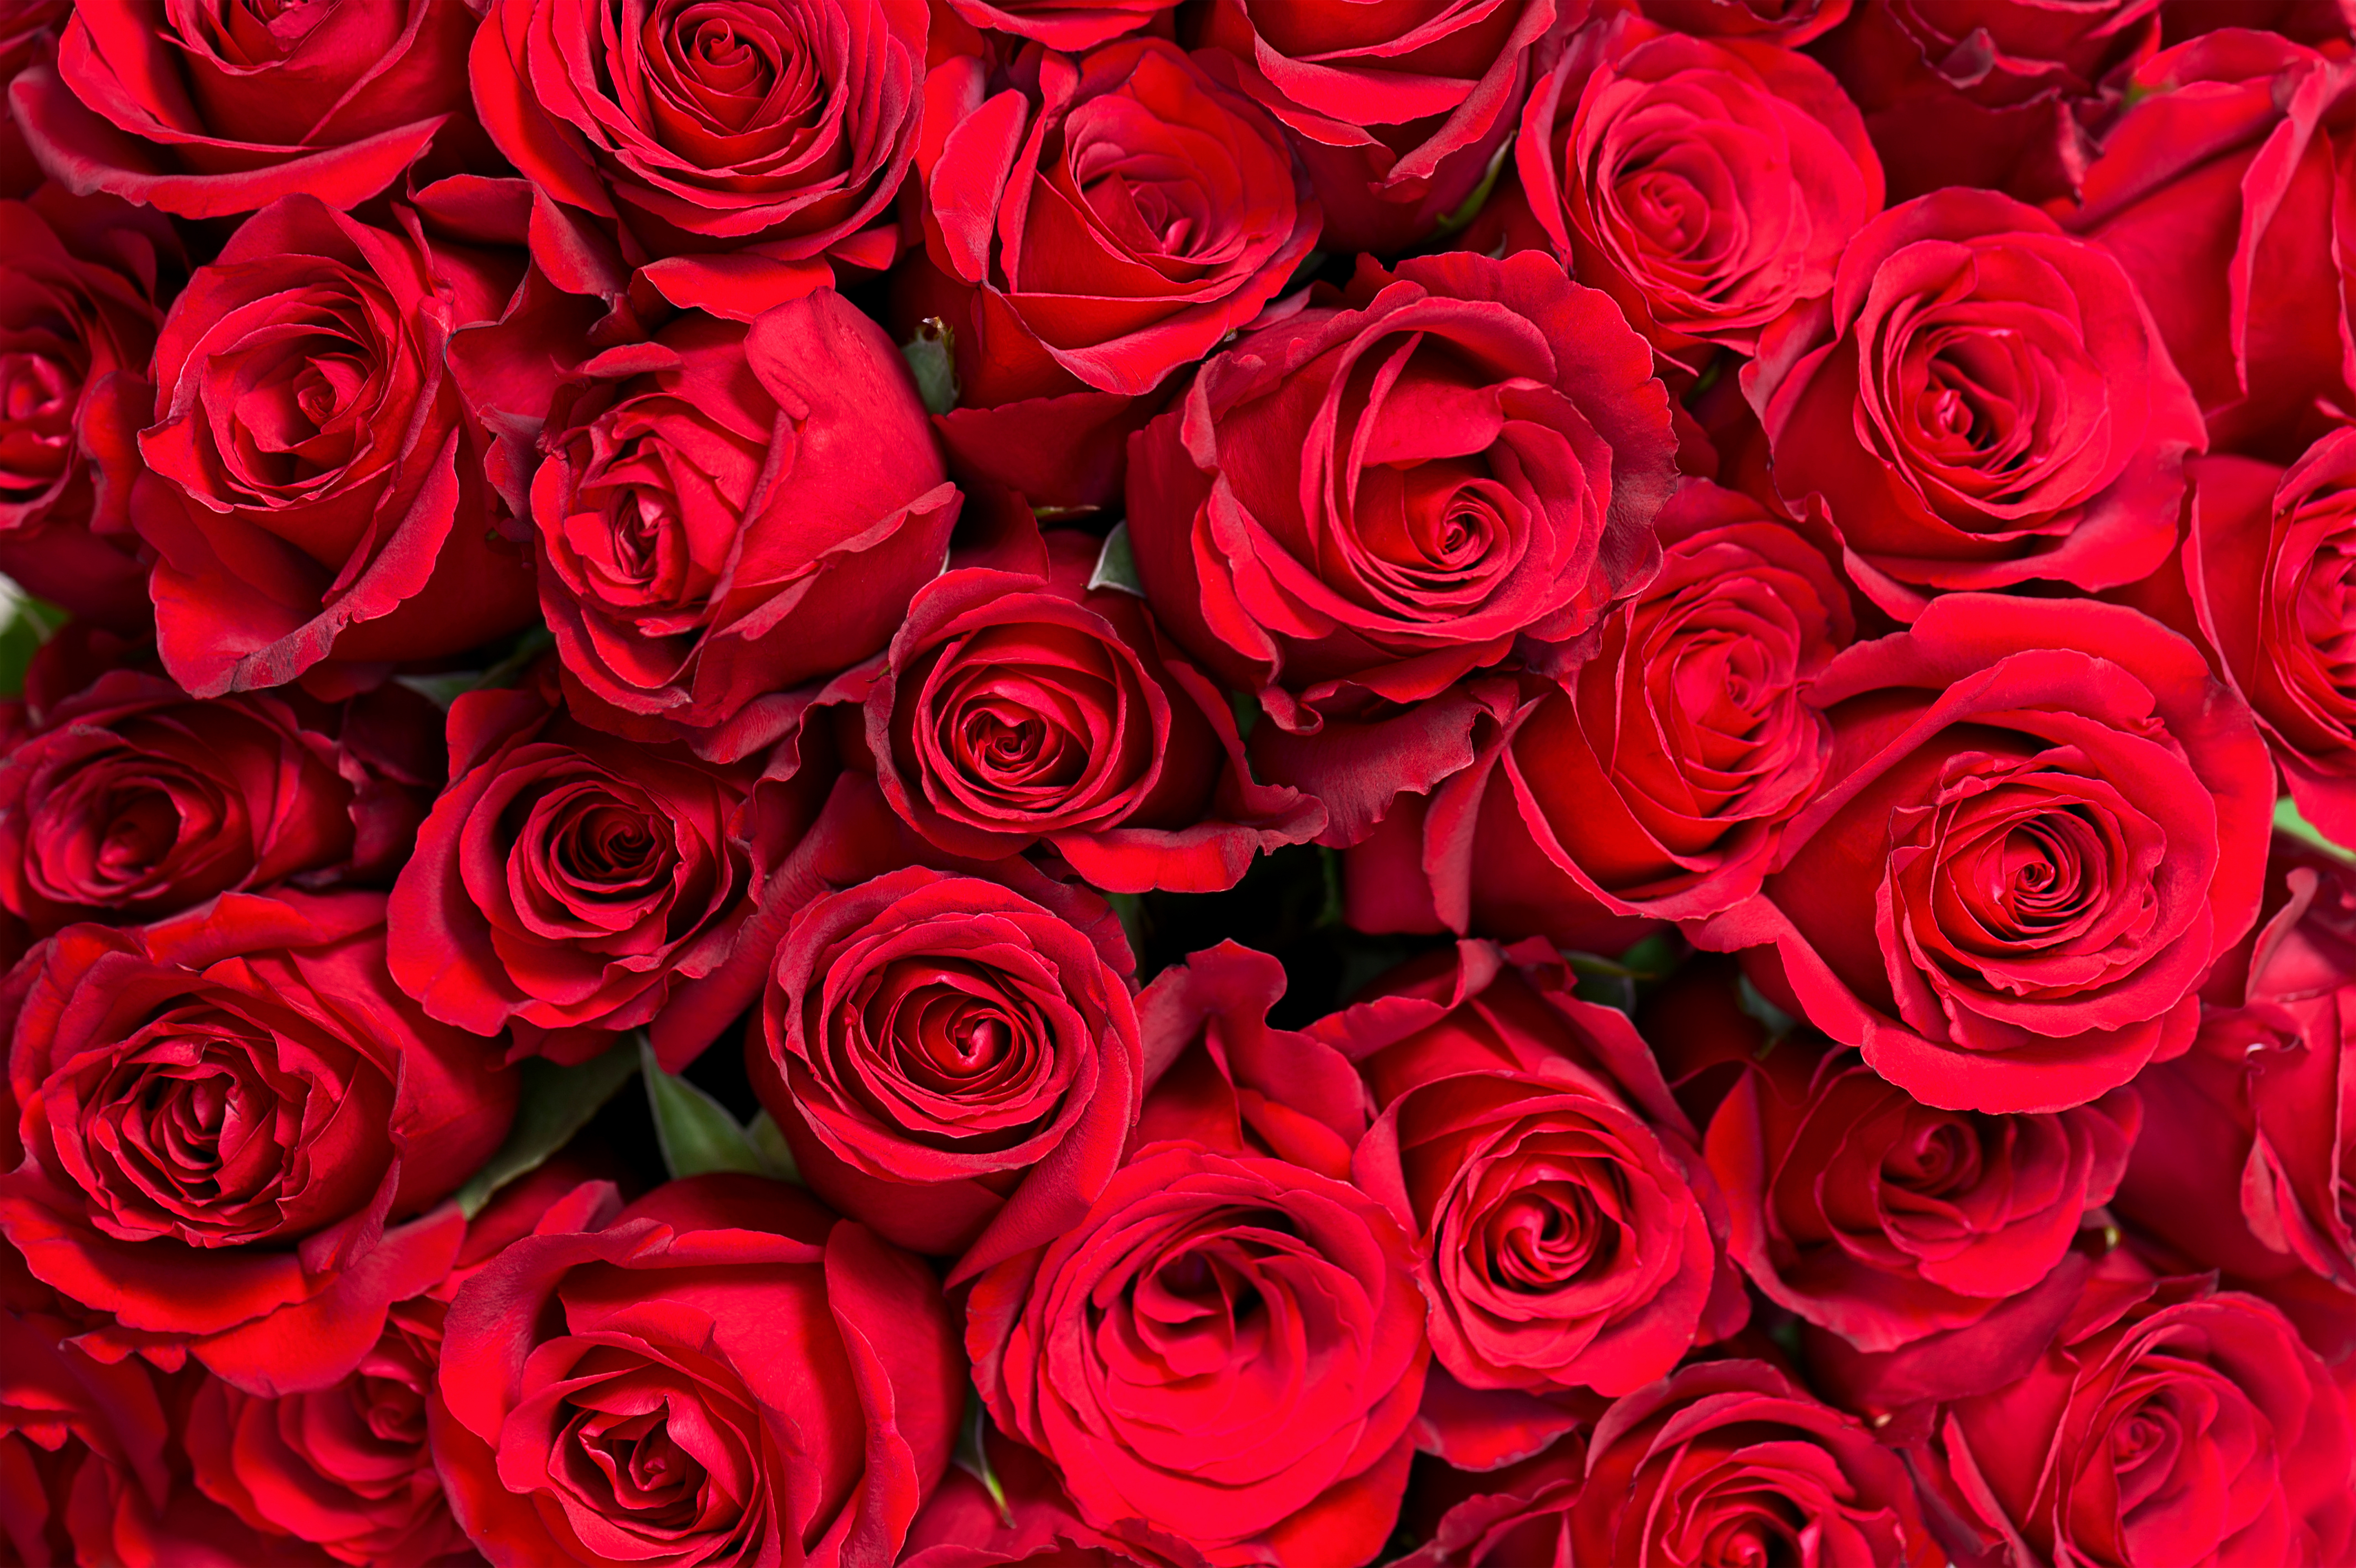 Red Roses Red Background.